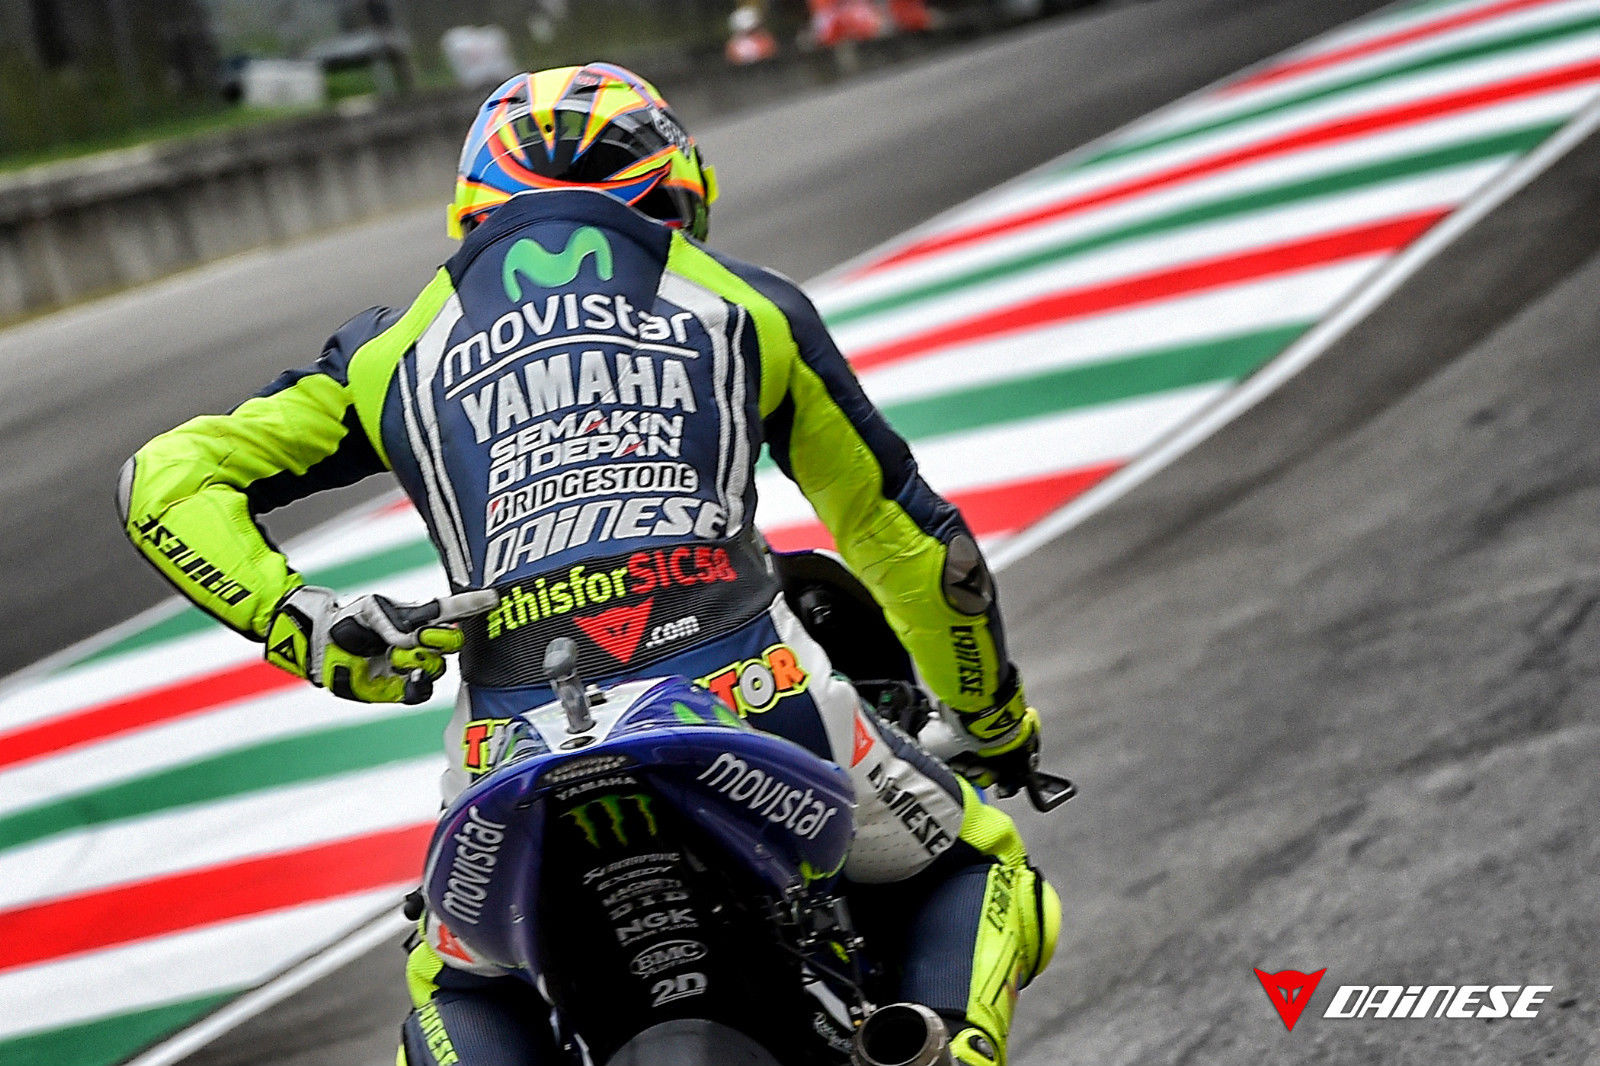 valentino rossi thisforsic58 mugello leathers up for sale autoevolution. Black Bedroom Furniture Sets. Home Design Ideas